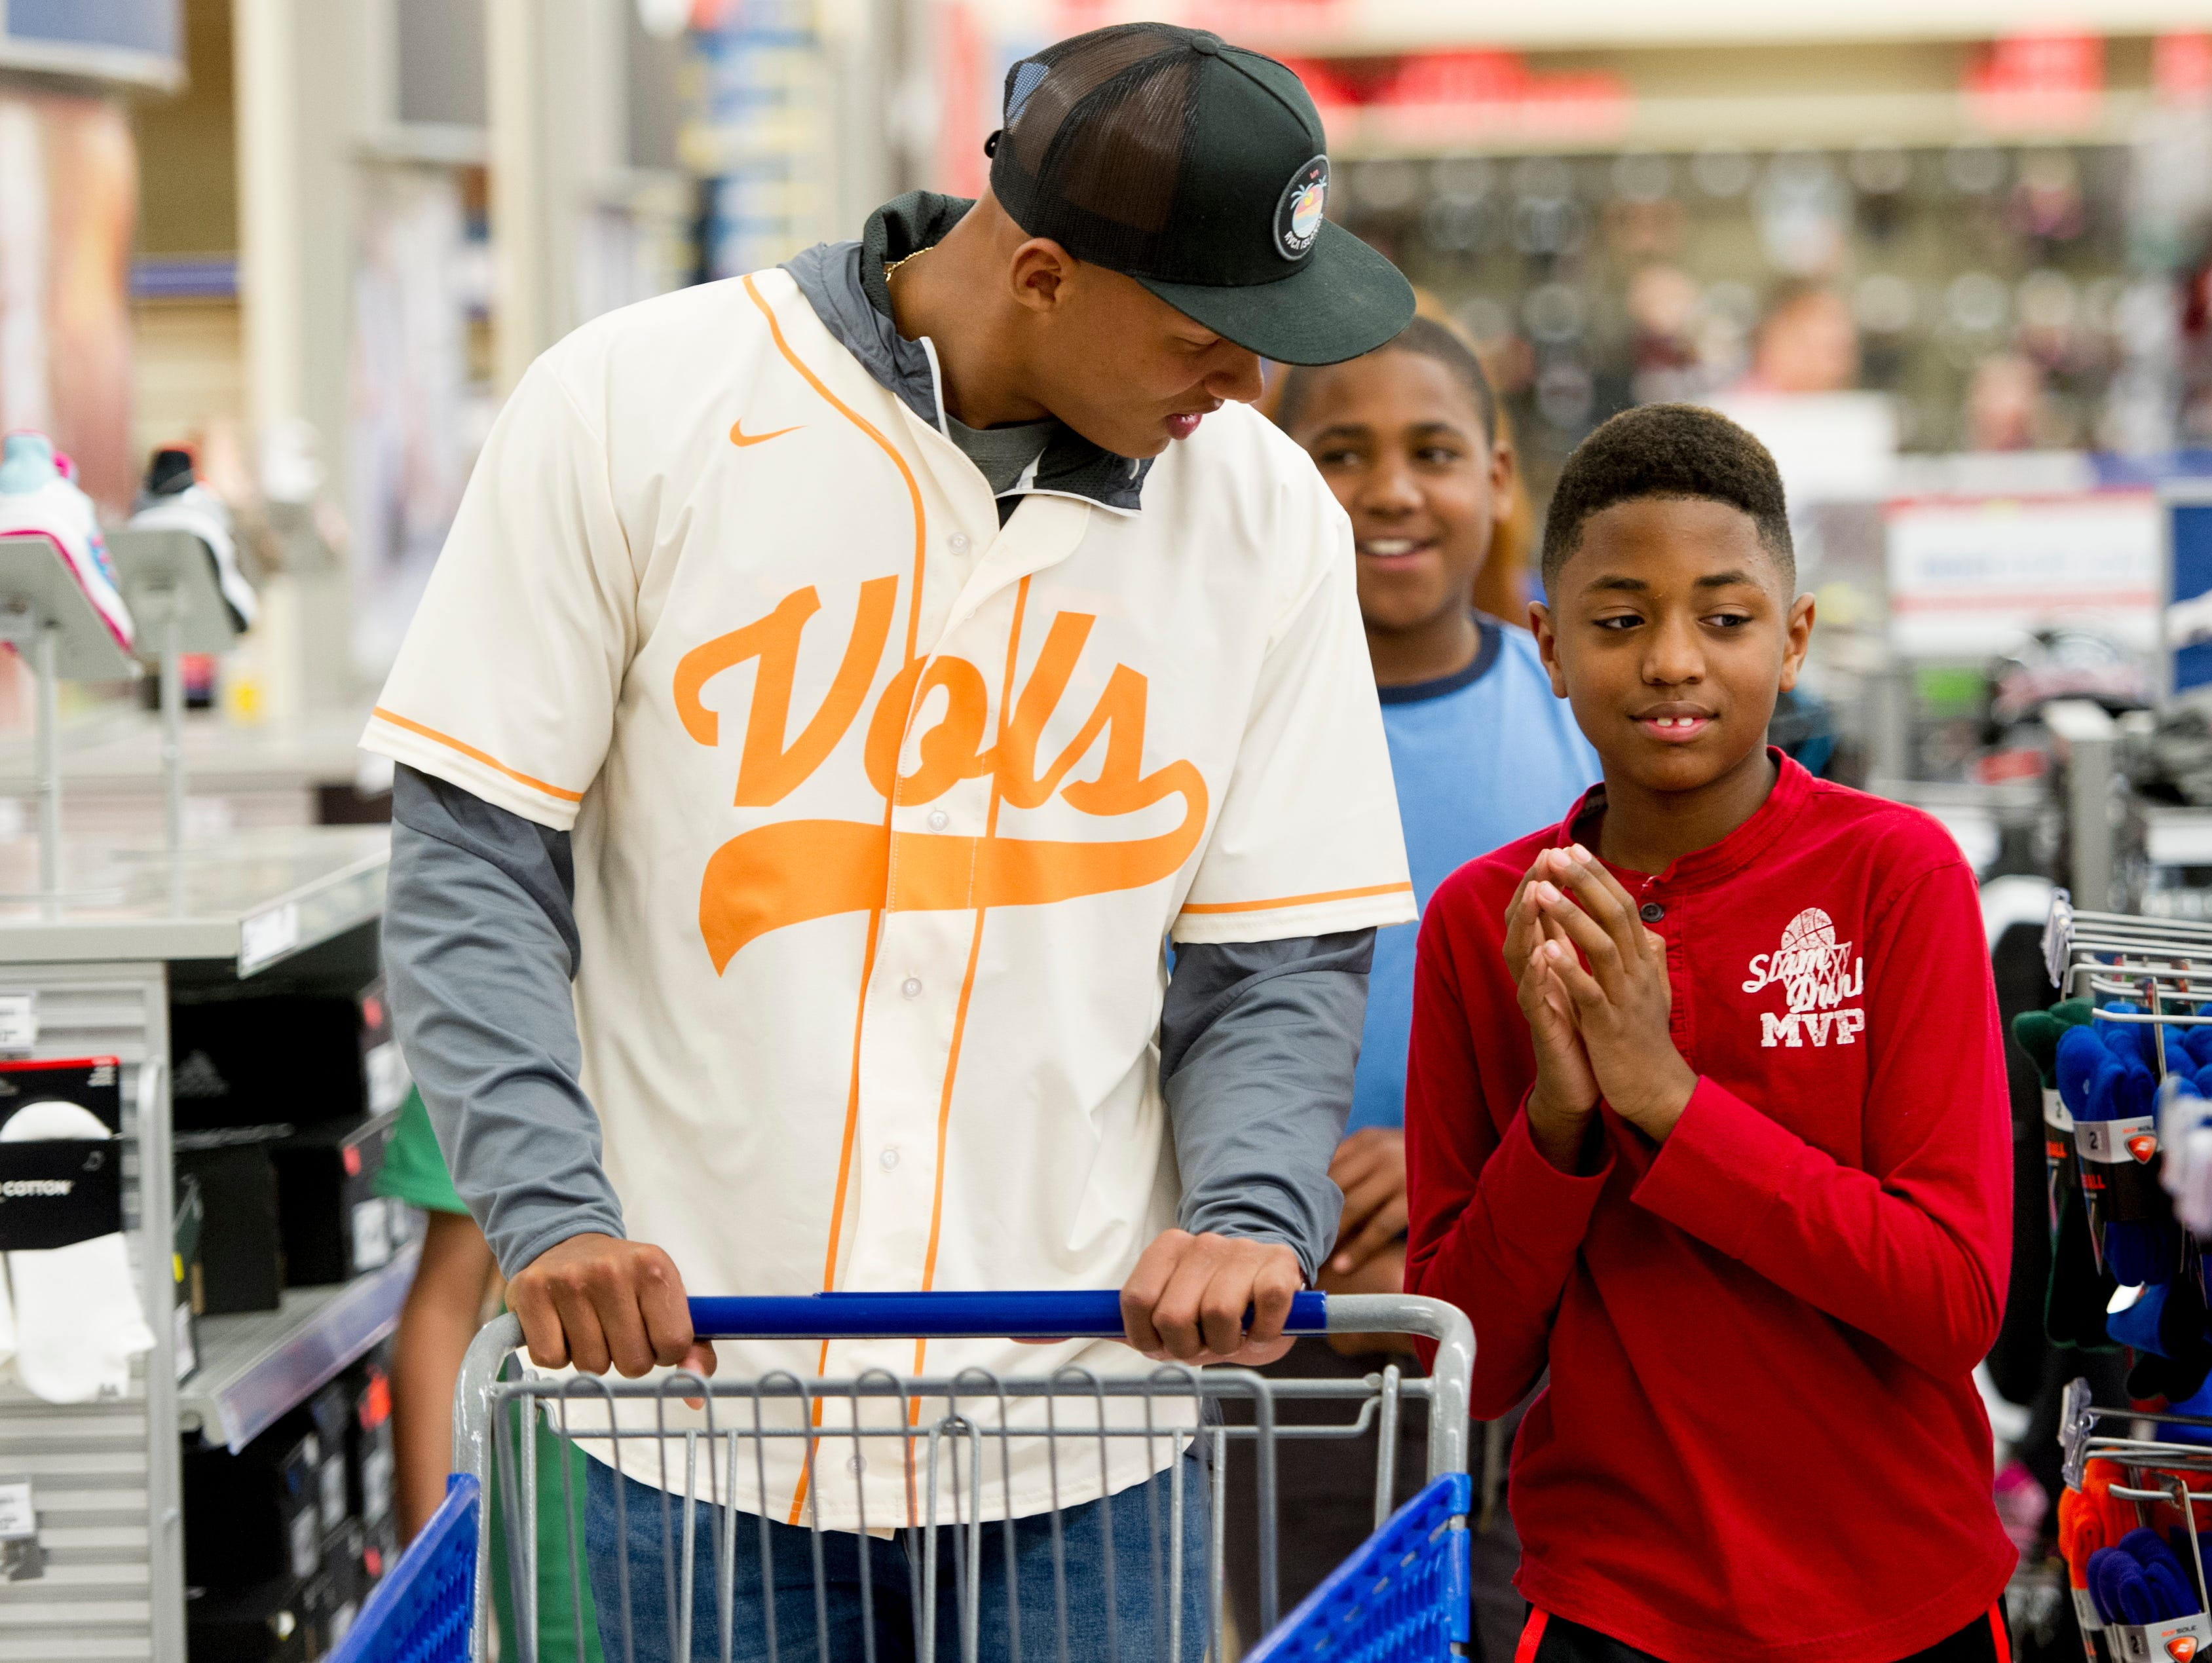 Former UT QB Joshua Dobbs chats with Jabari Isom, 11, of Knoxville, while pushing a shopping cart full of football gear during a football sporting goods shopping spree at Academy Sports + Outdoors in Knoxville, Tennessee on Friday, March 31, 2017. Dobbs held a shopping spree for 11 area kids who are participating in his football camp.